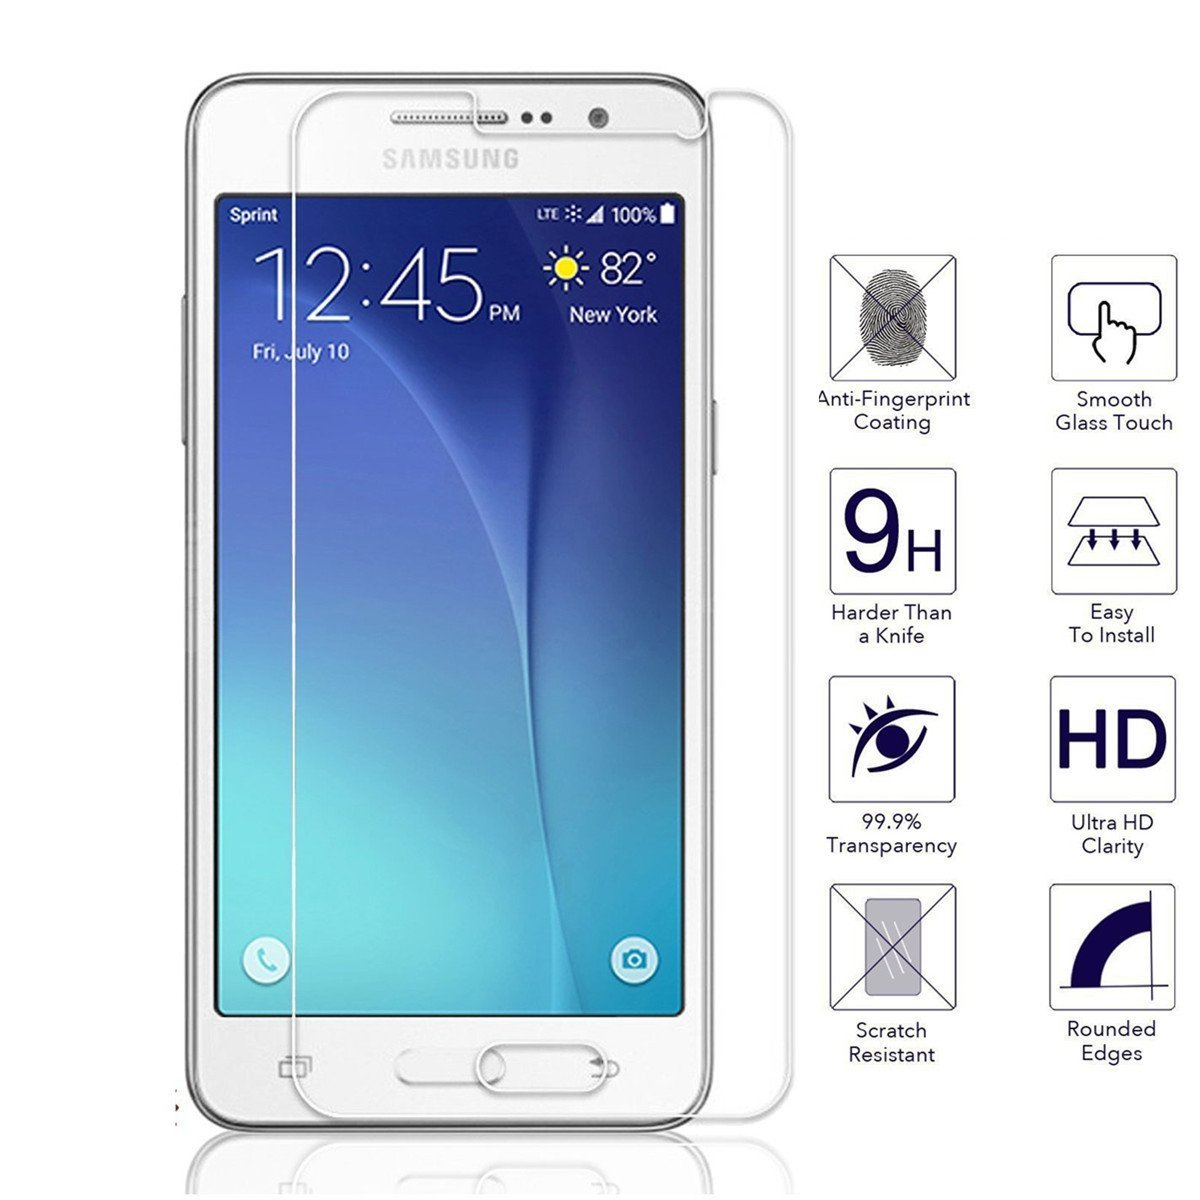 Tempered Glass For Samsung Galaxy S3 S4 S5 NEO S6 J7 J5 J3 J1 2016 Core J2 Prime G360 G361F Grand Prime VE G530 G531F G531H